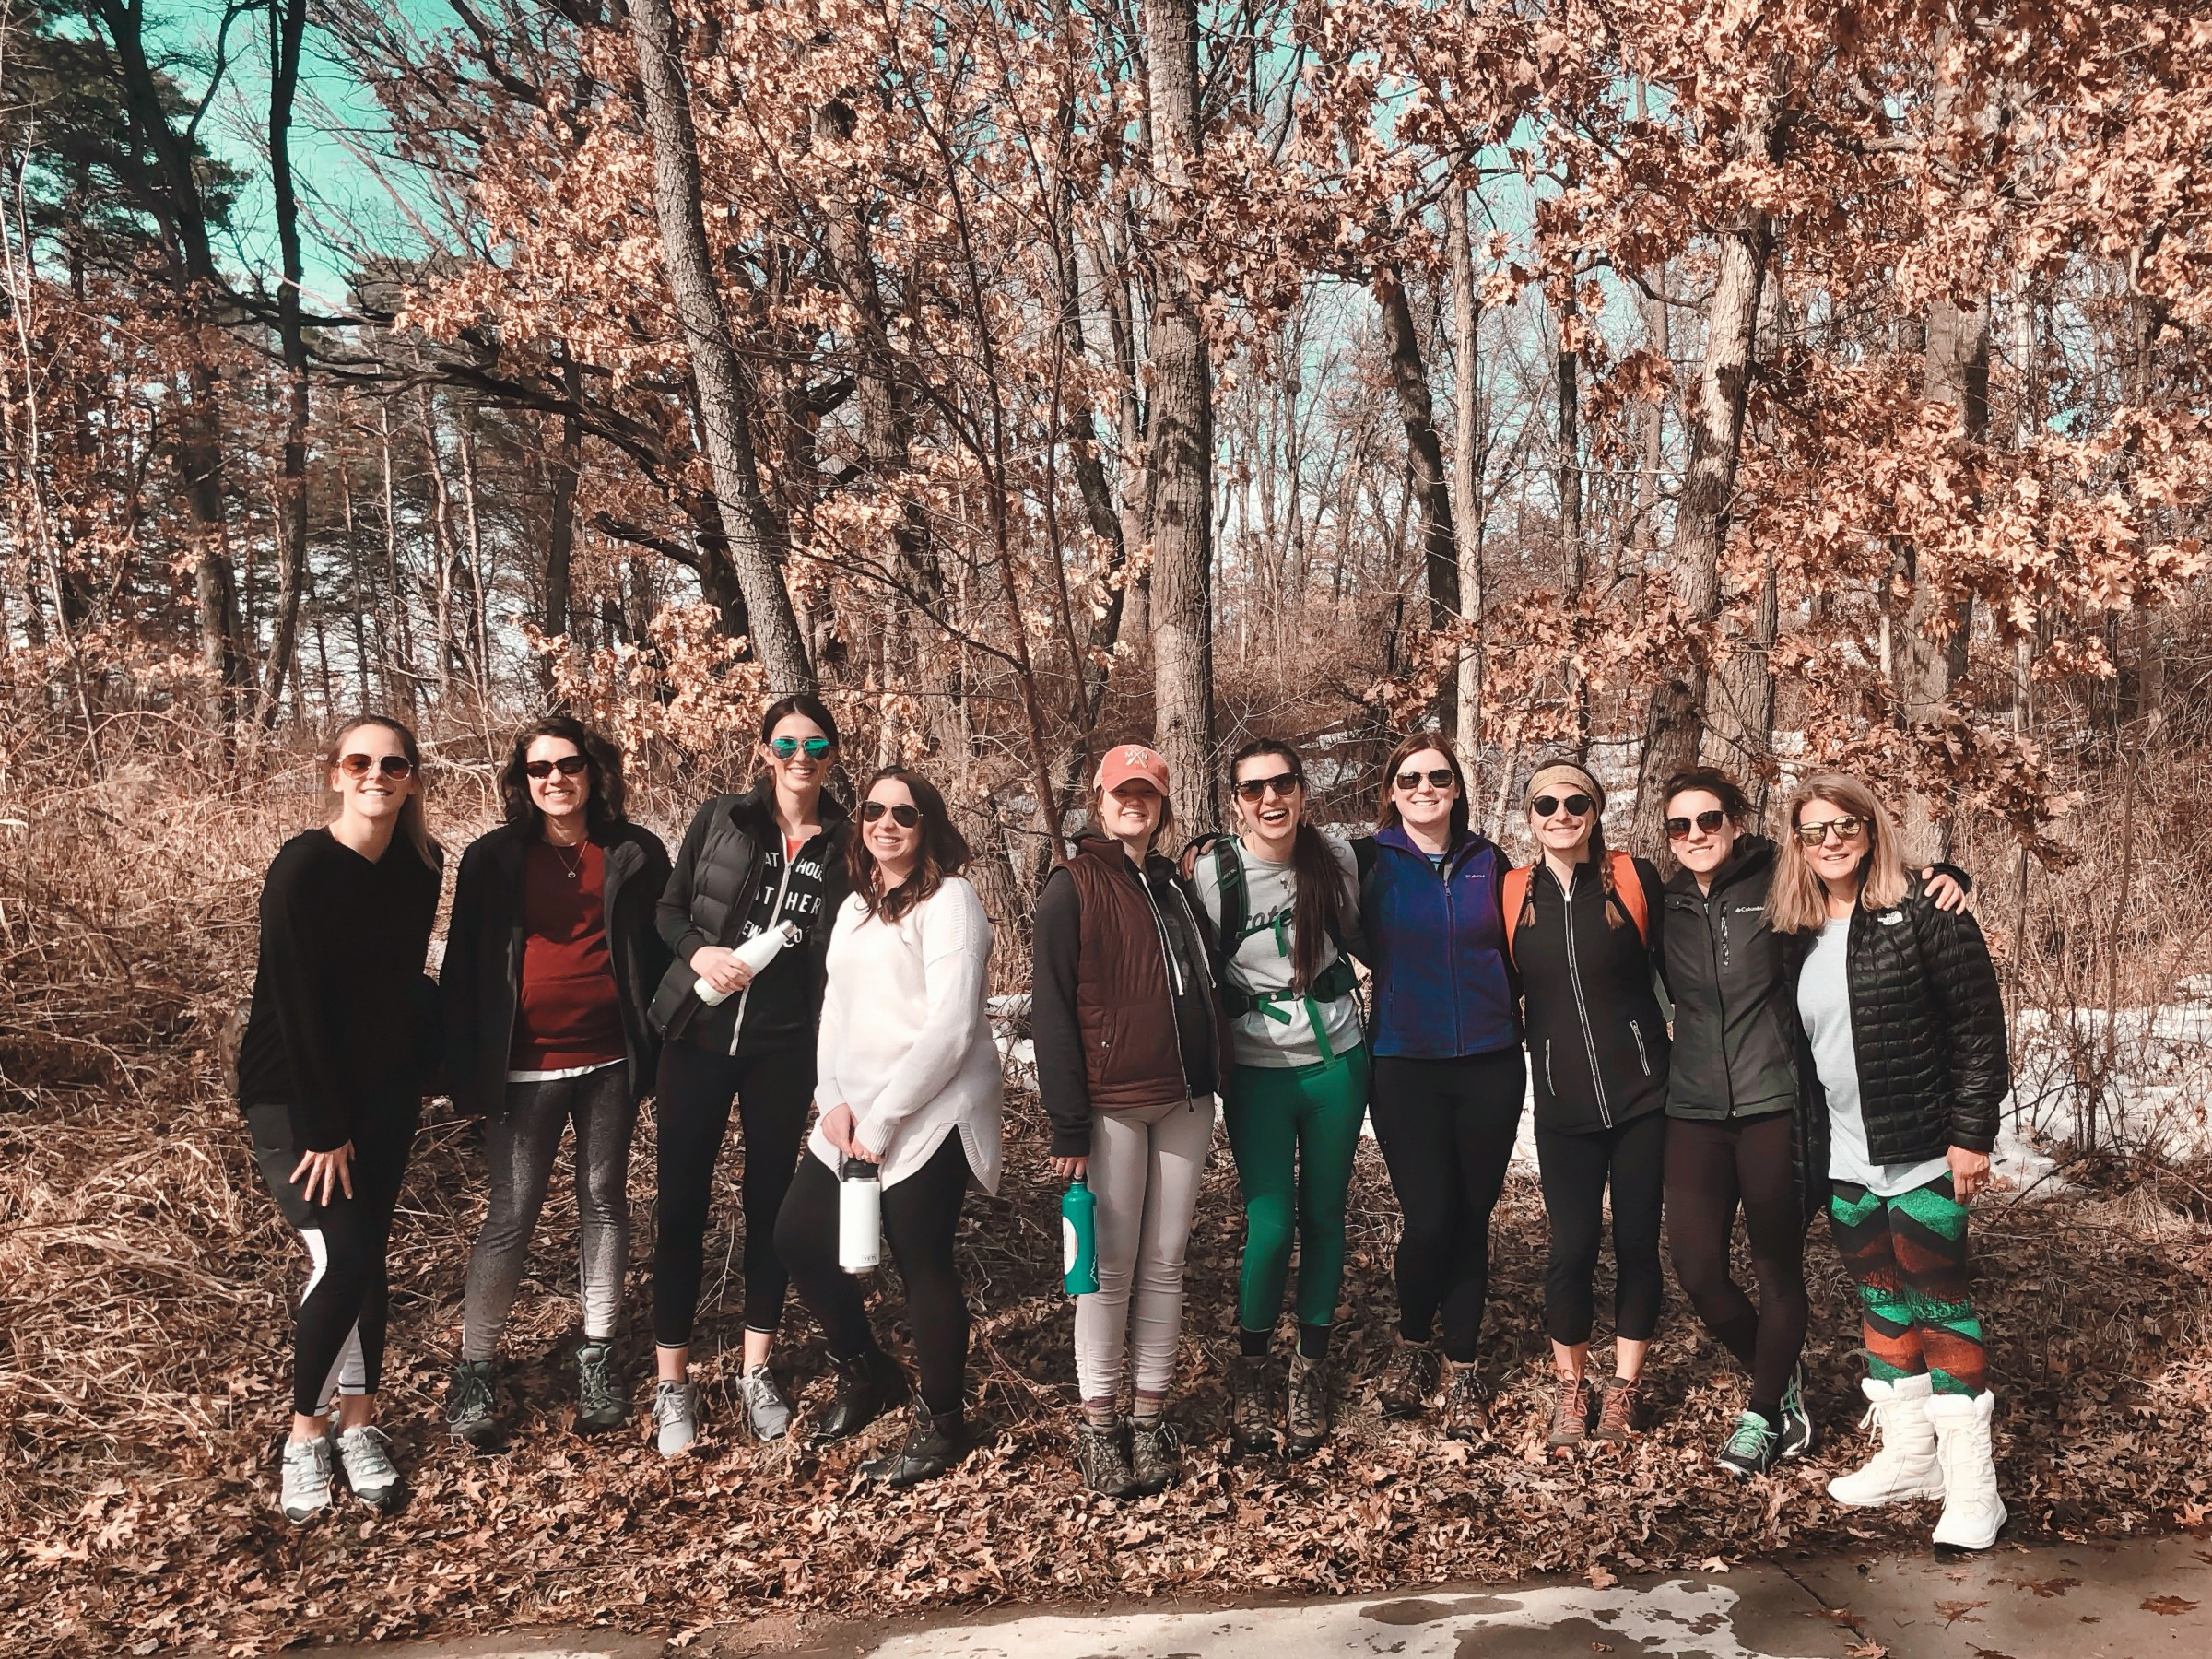 Twin Cities Minnesota Yoga Teacher Restorative Yin Vinyasa Hiking Workshop